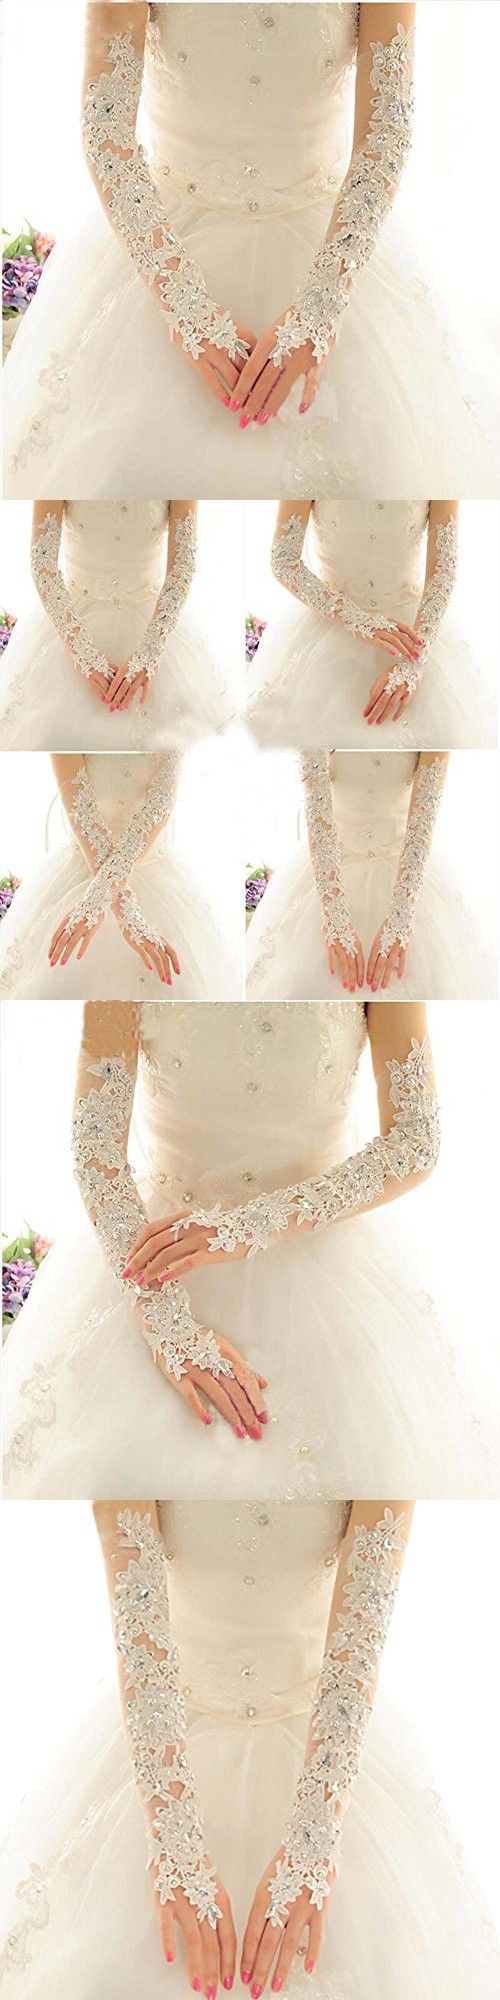 Exquisite Fingerless Rhinestone Lace Bridal Wedding Gloves Bride Bridal Wedding Dress Lance Gloves White